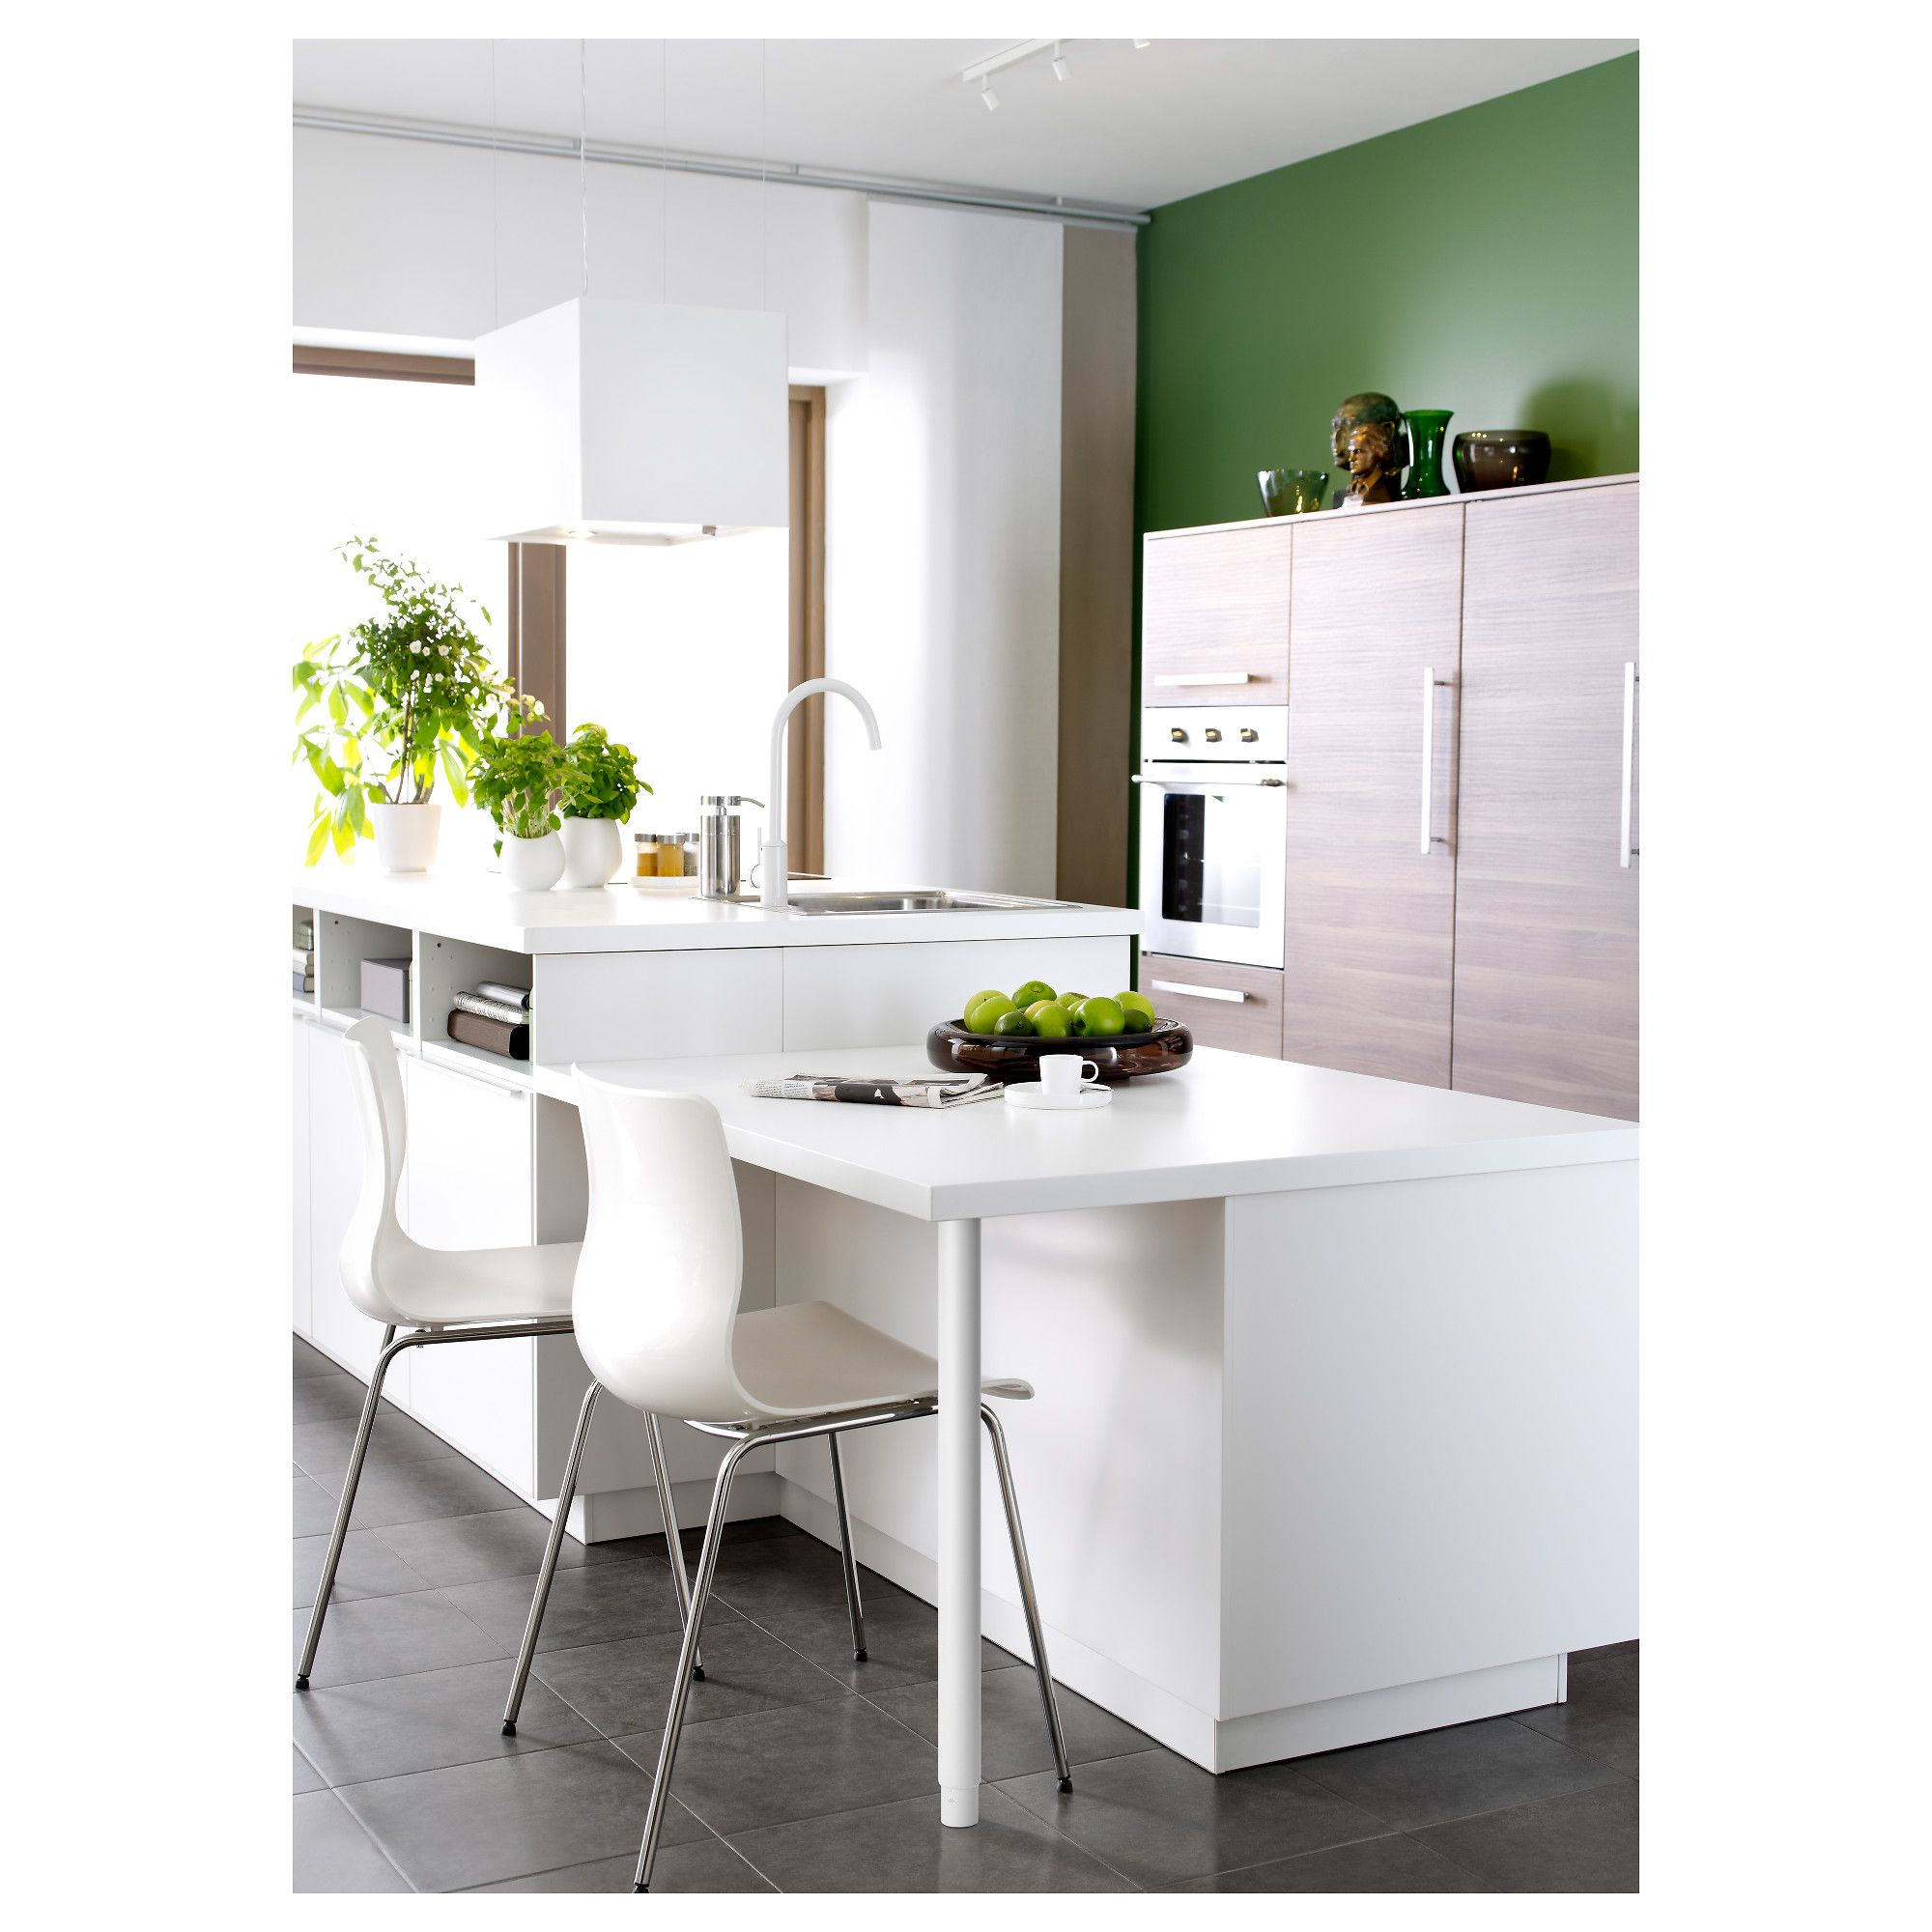 Shop for Furniture, Home Accessories & More Ikea kitchen